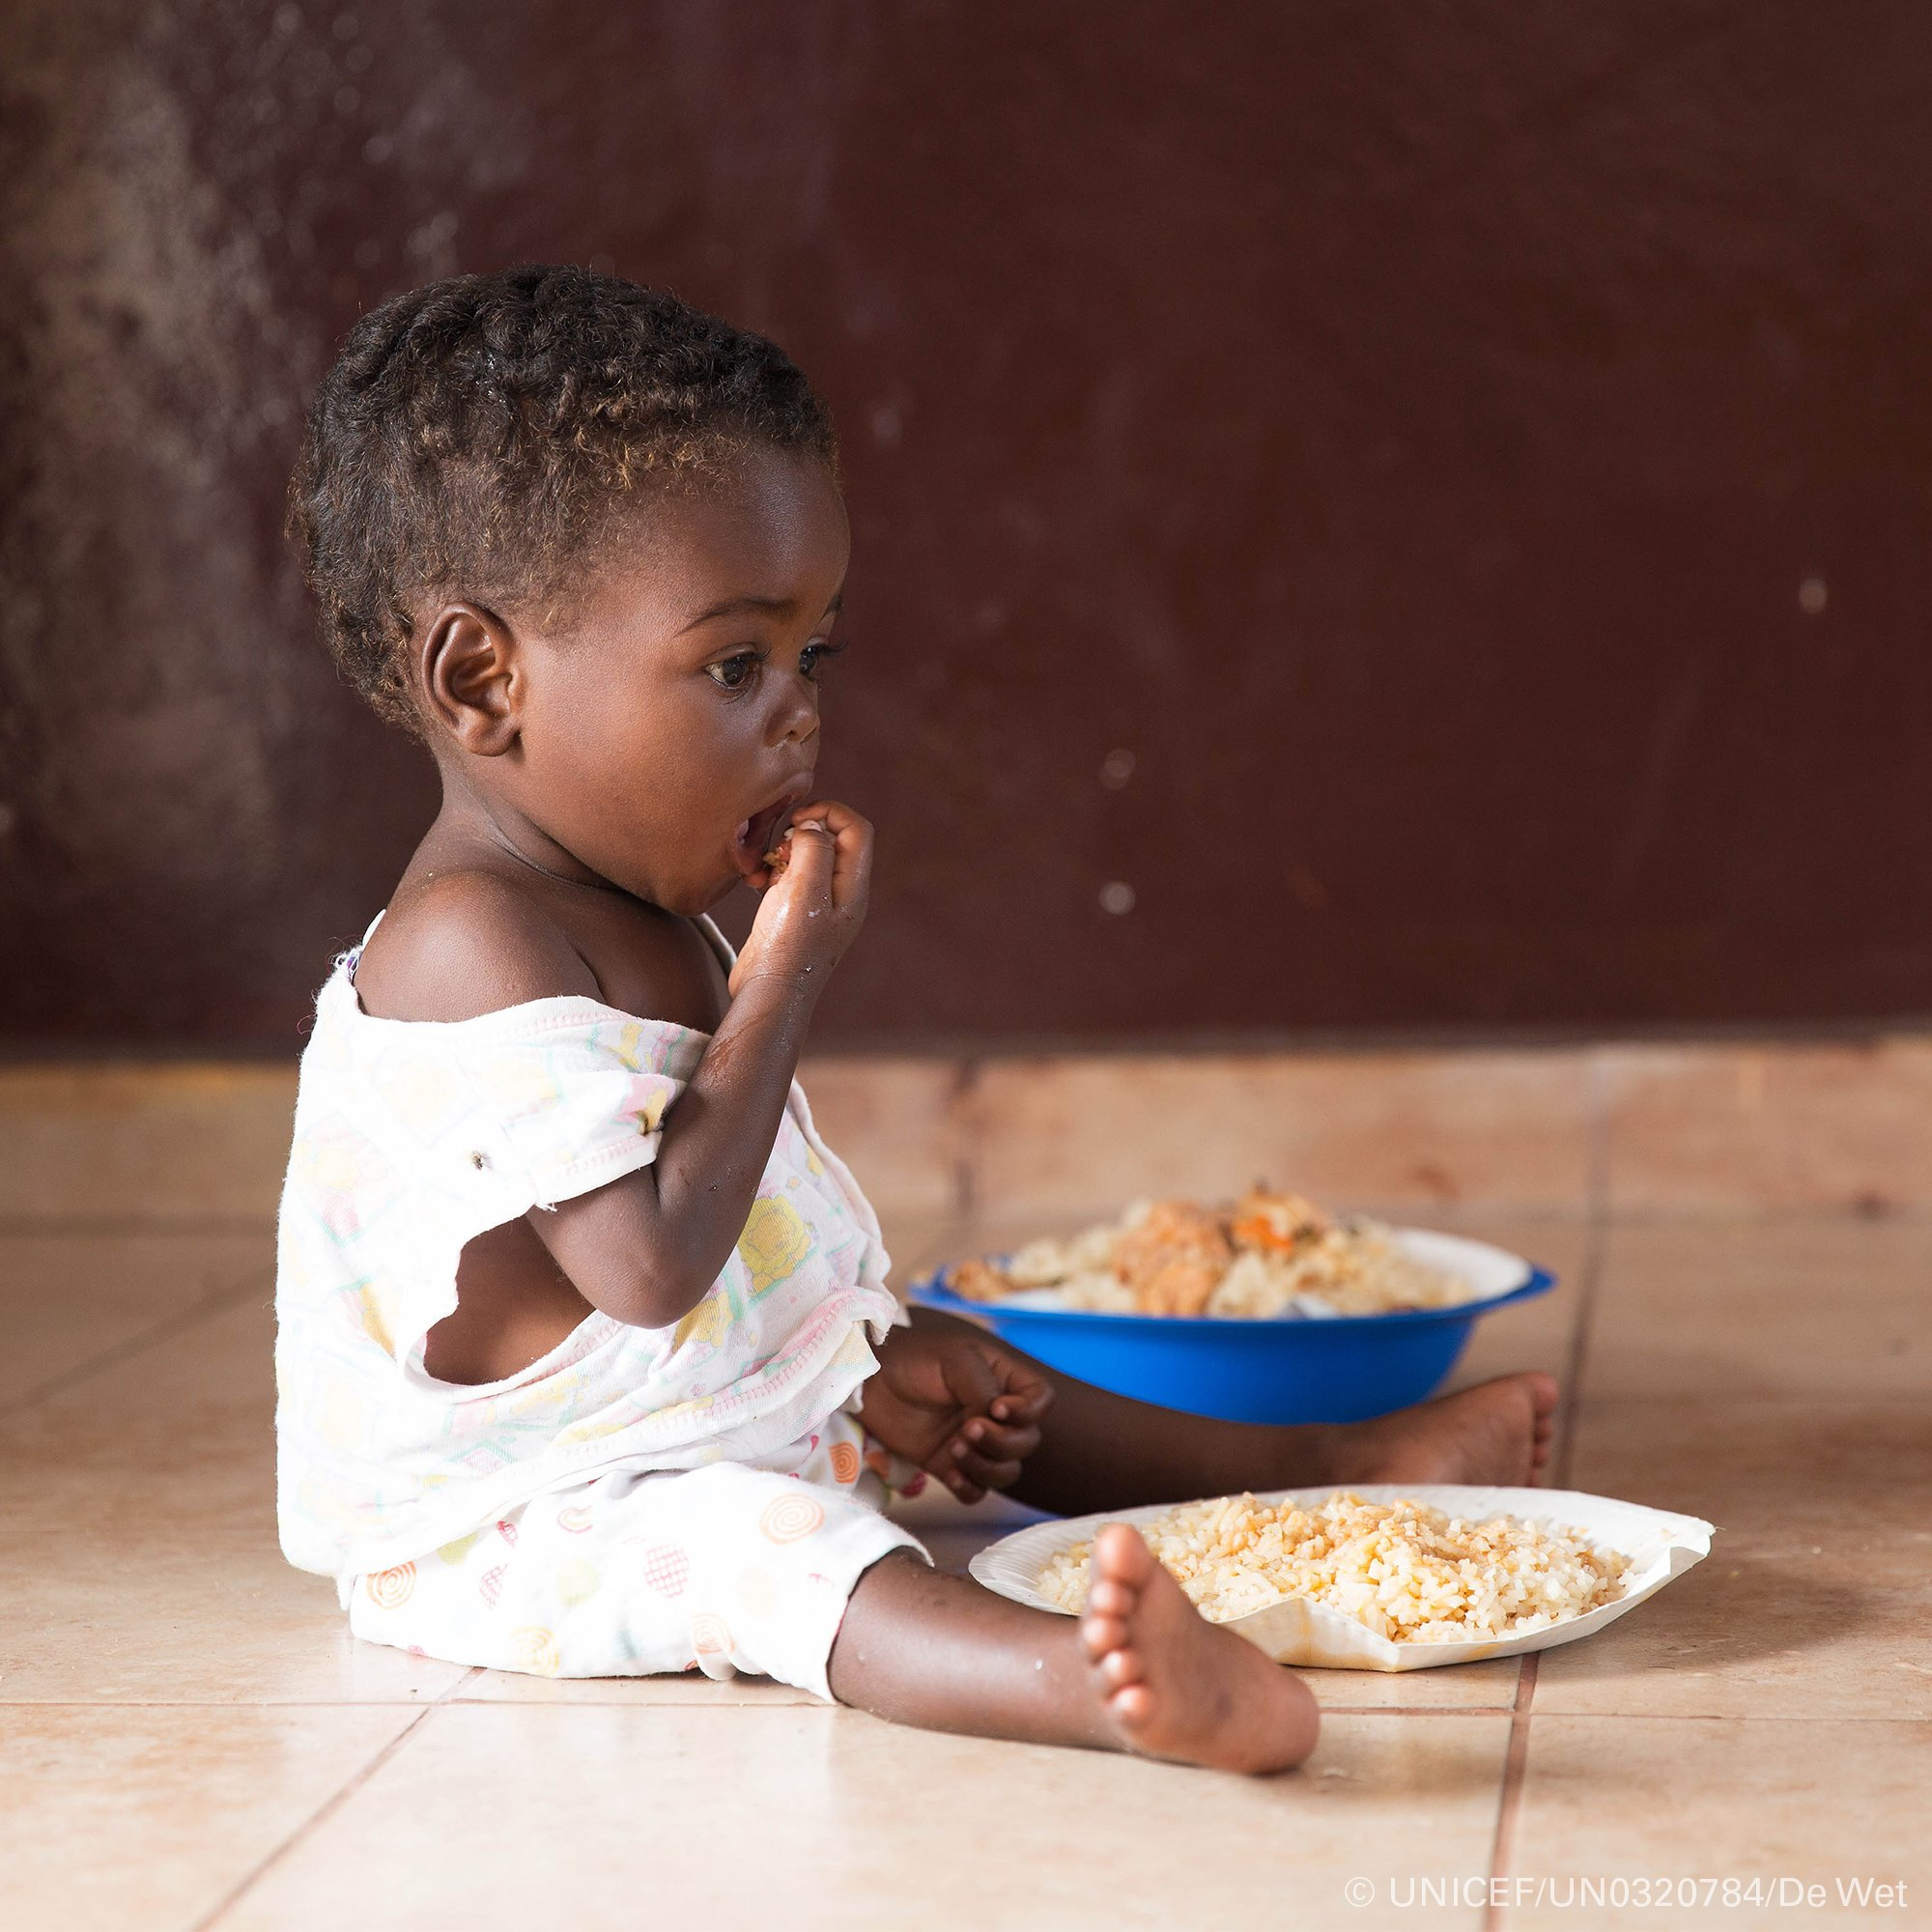 🥗 = 💪🏾 🧠 👨🏼‍🎓  When we invest in children's nutrition, we invest in the bodies, brains and futures of tomorrow's citizens. We must ensure every child has access to a nutritious and affordable diet to grow up healthy.  #SOFI2019 https://t.co/GICrZJ6rlB